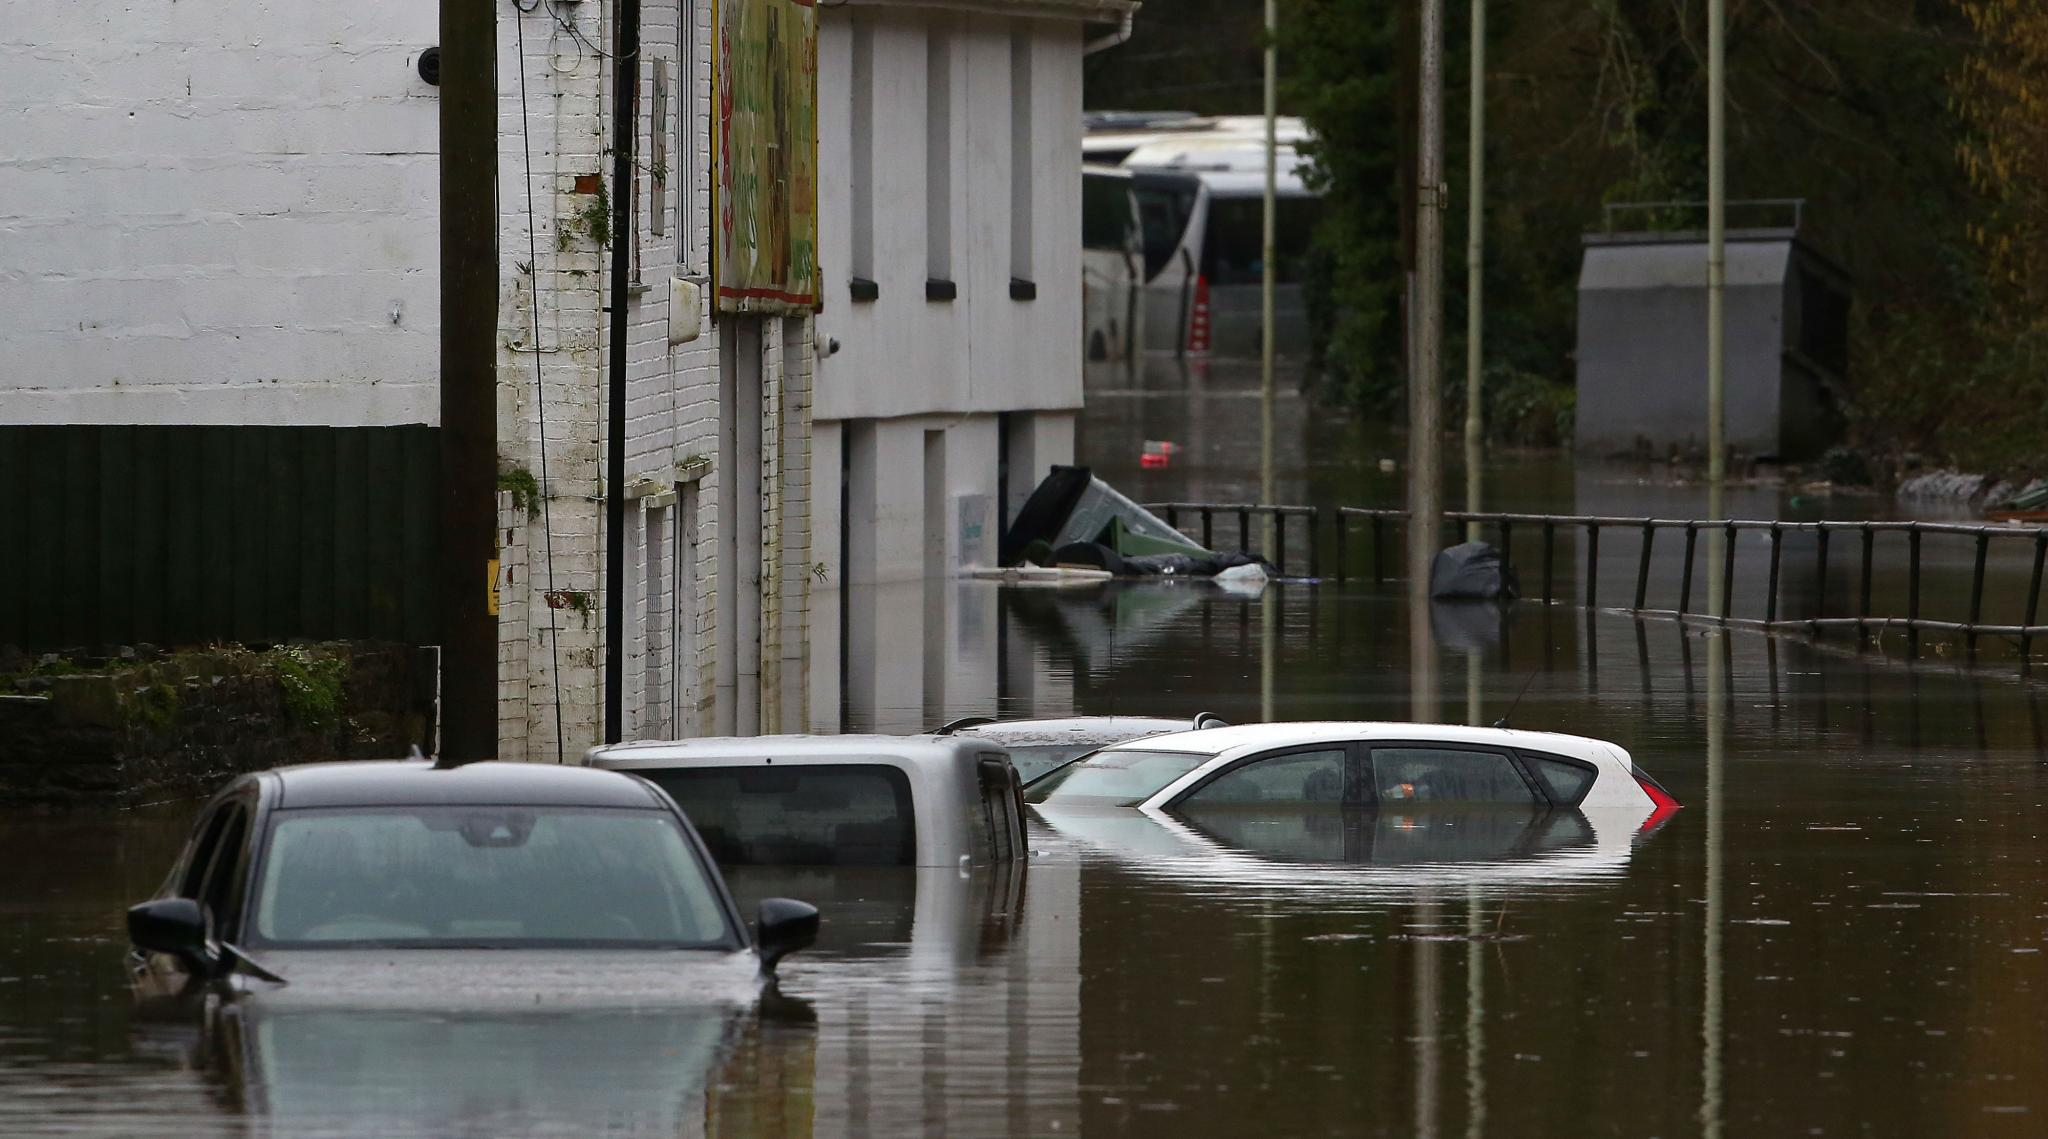 Storm Dennis: UK Issues Rare 'Danger to Life' Warning Over Heavy Flooding and High Winds